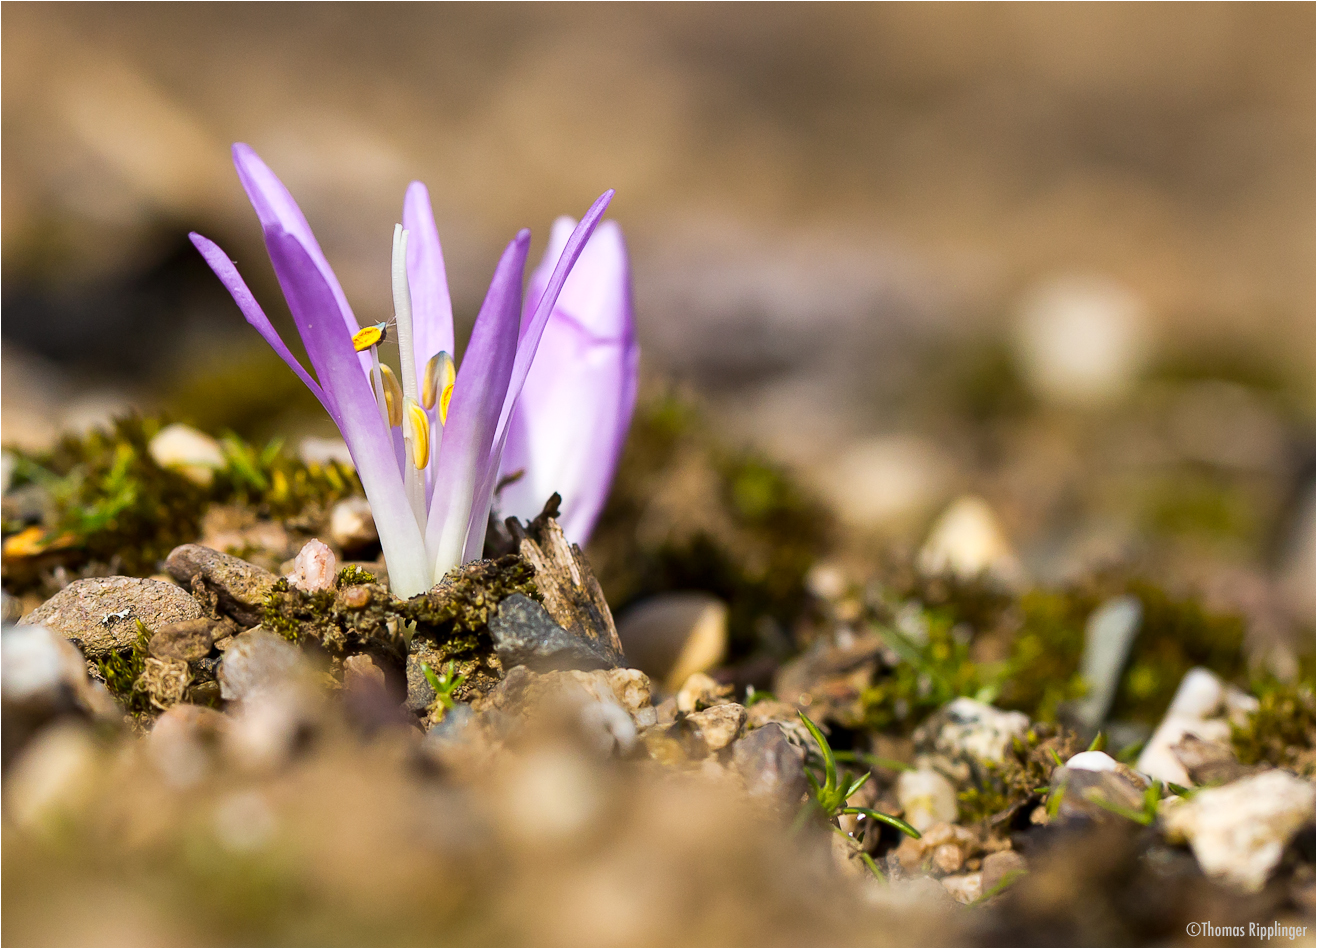 Frühlings Lichtblume (Colchicum bulbocodium).